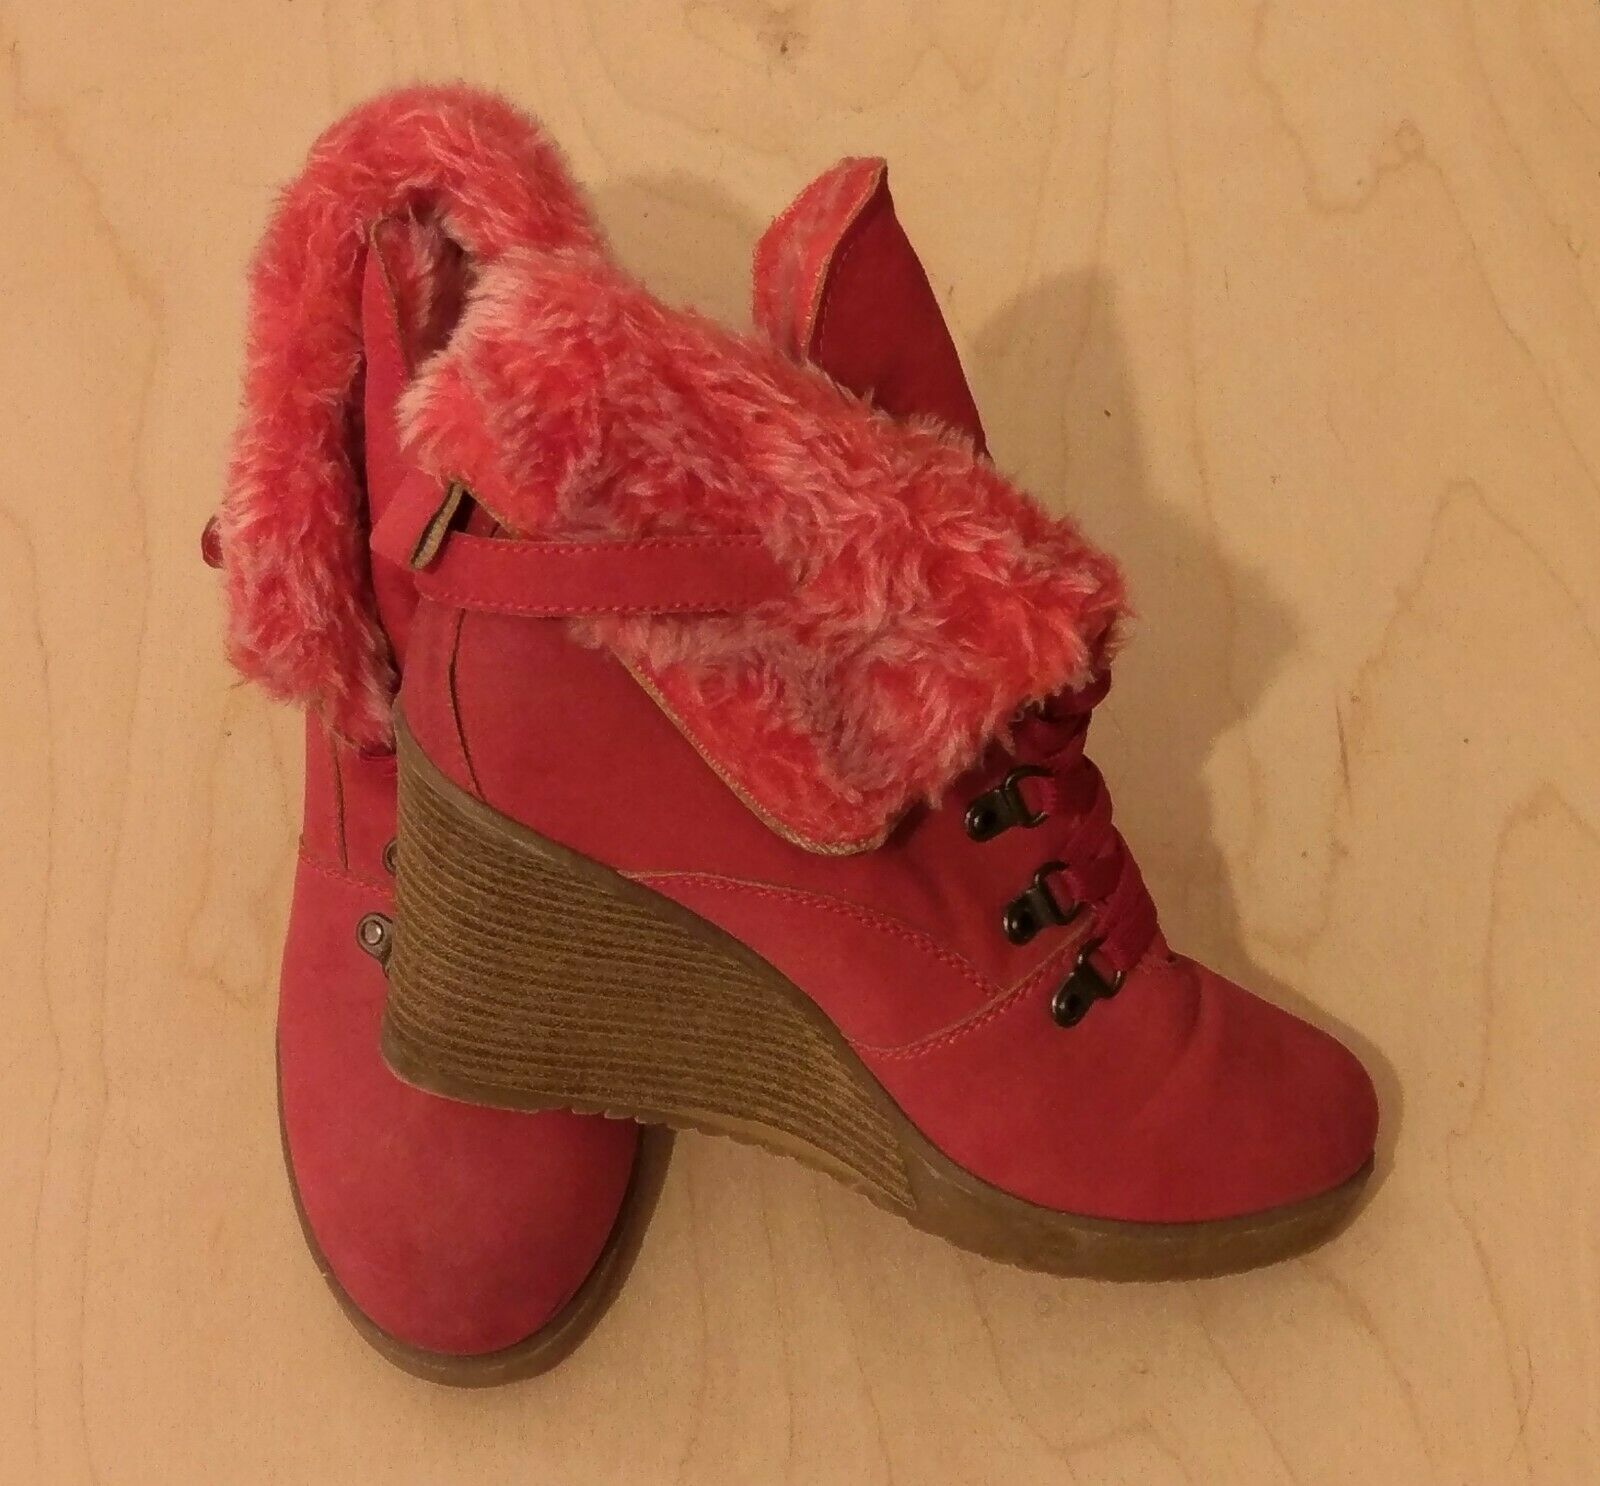 Red Faux Fur Suede Buckle Strap Lace Up Wedge Heel Warm Ankle Boots Size 6  6.5